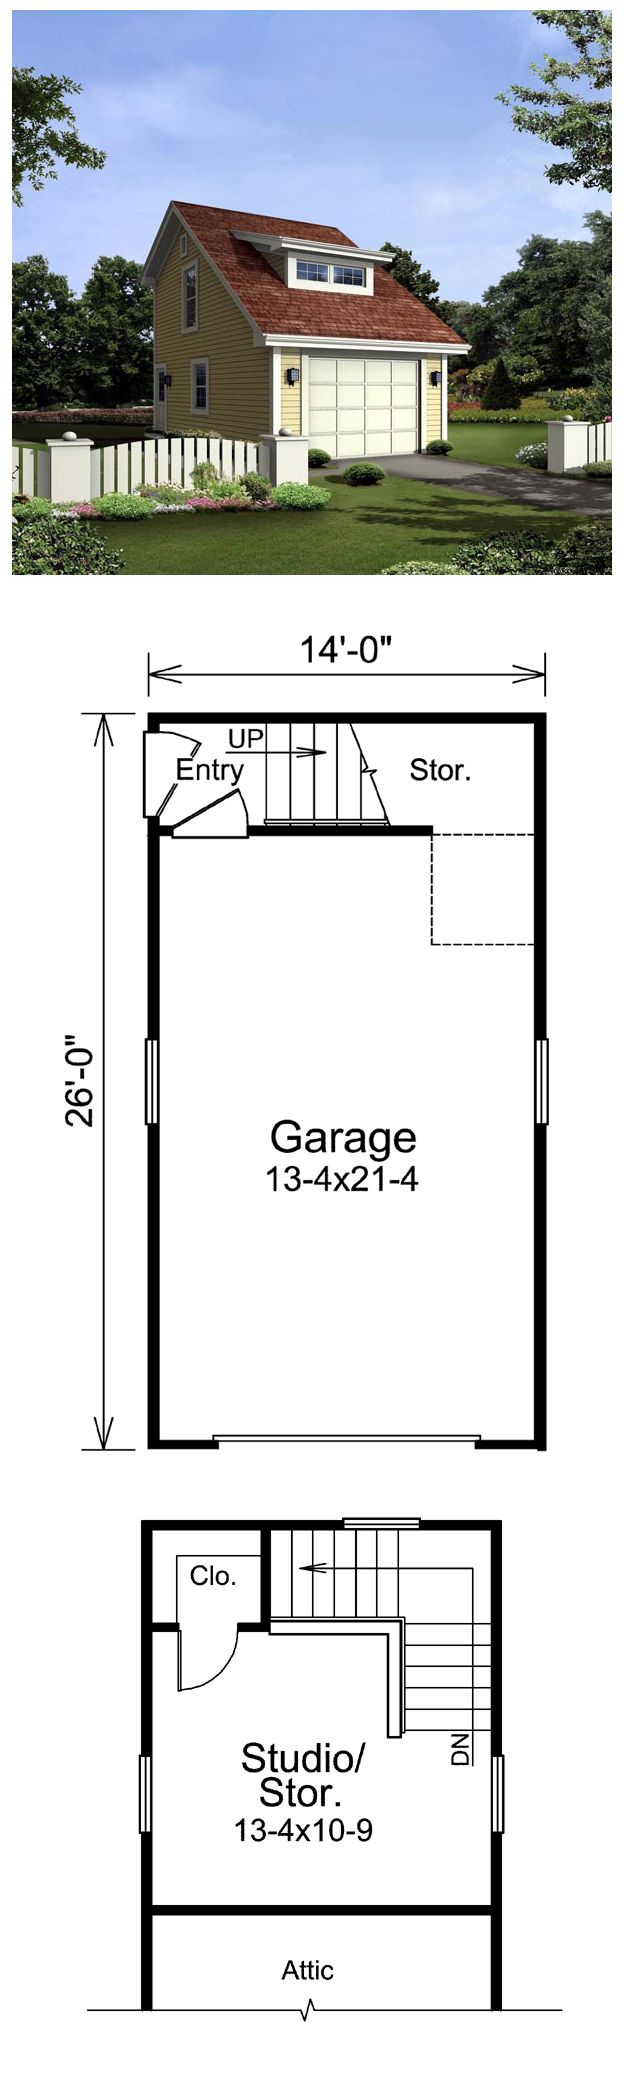 27 Best One Car Garage Plans Images On Pinterest Garage